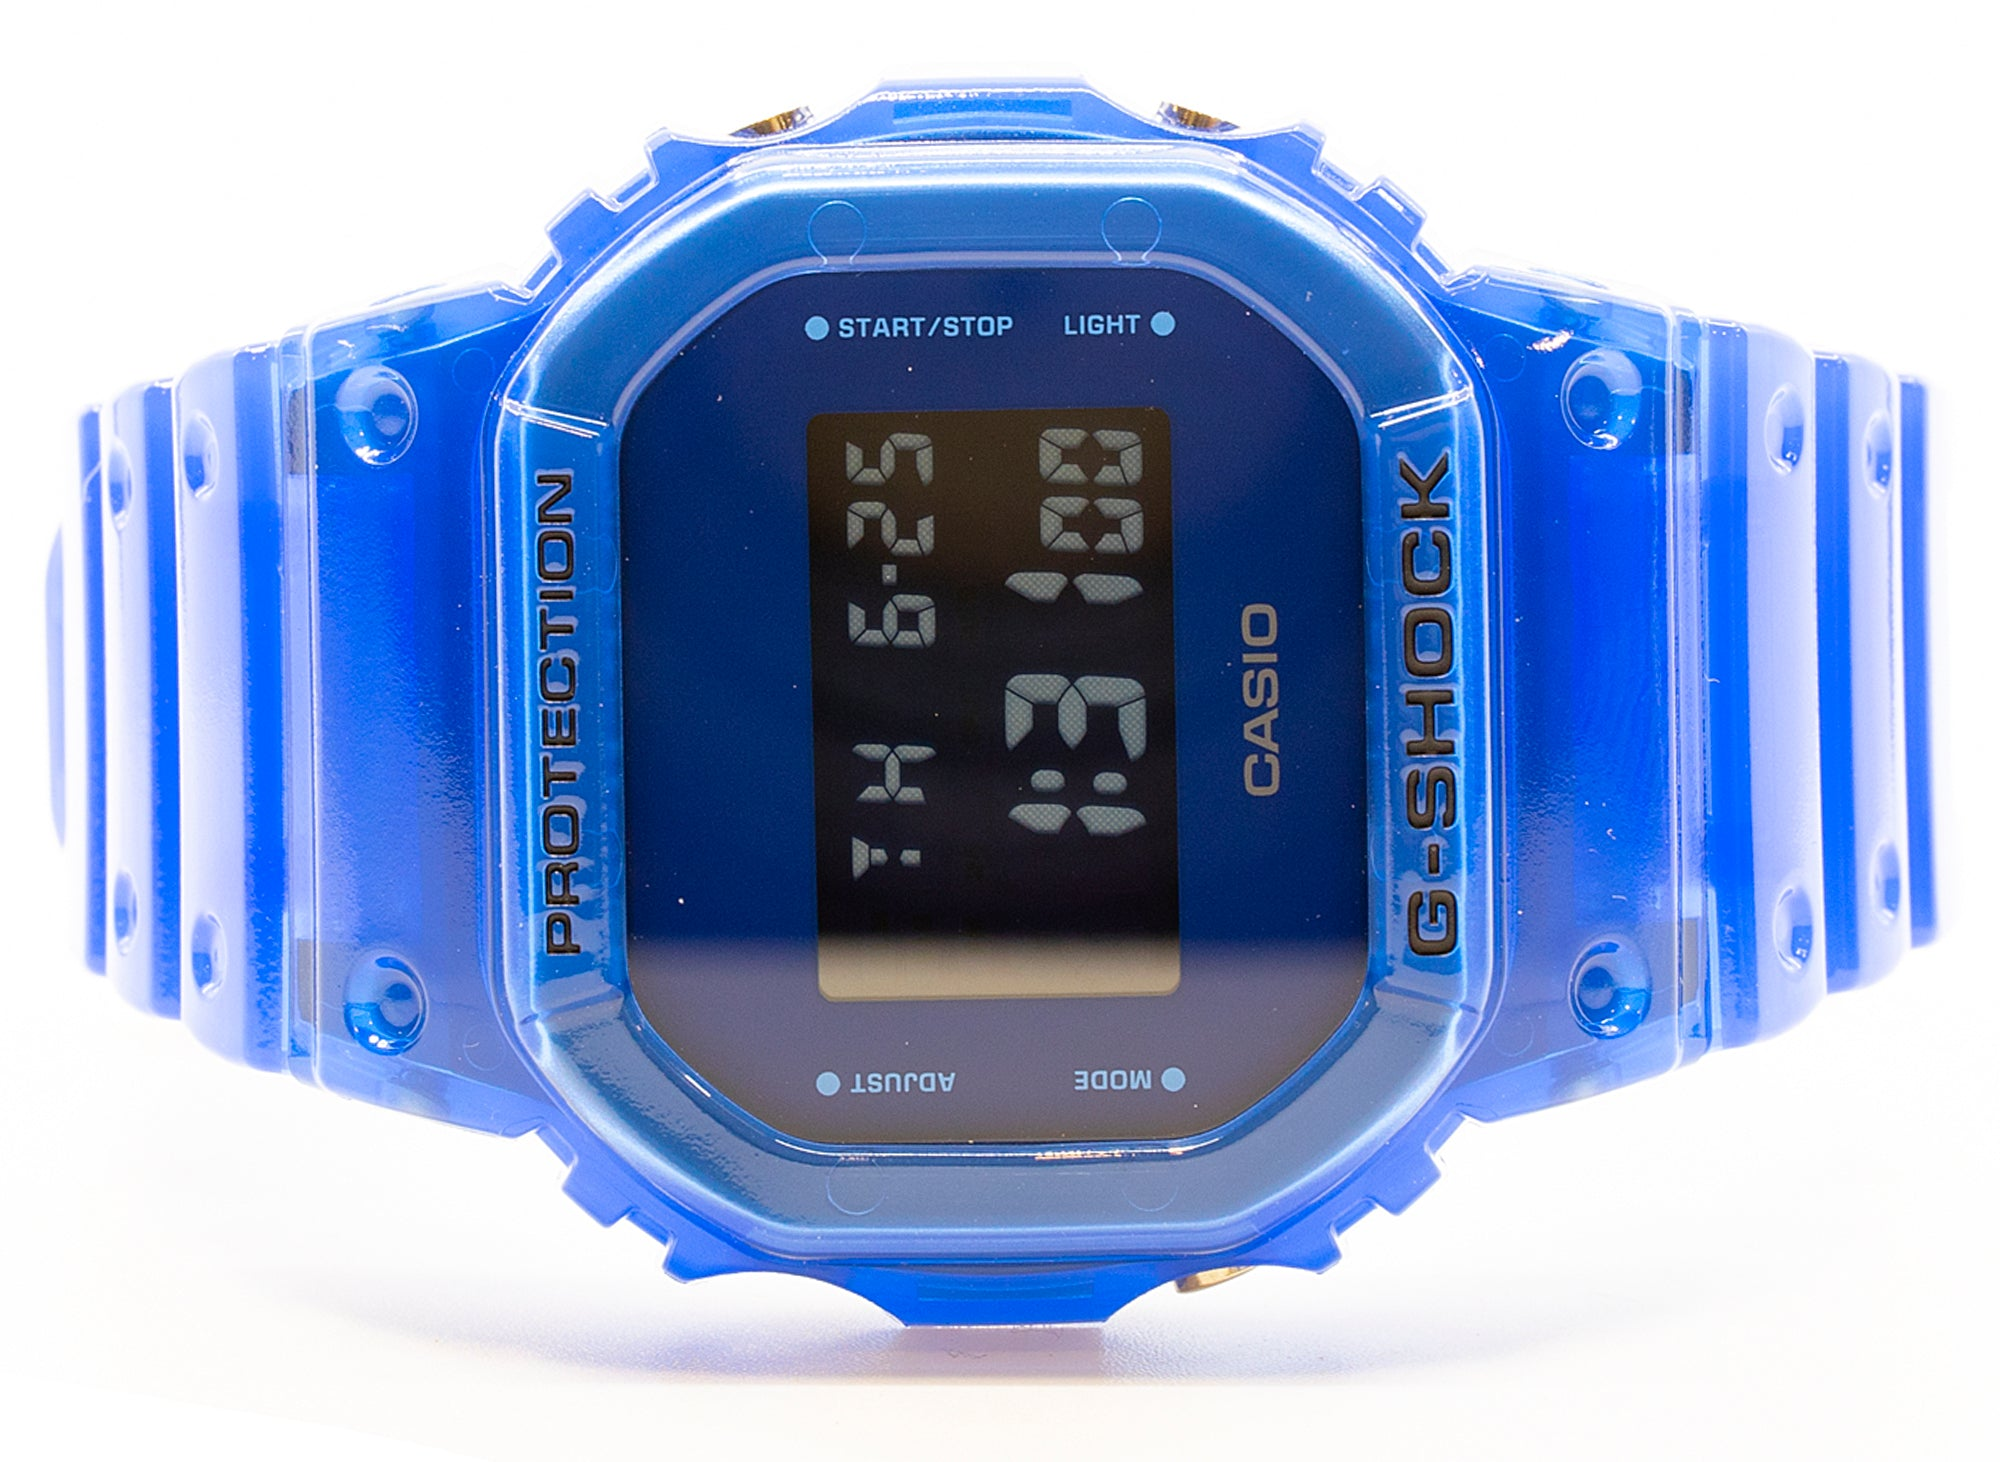 Casio G-Shock DW5600Sb-2 in Blue